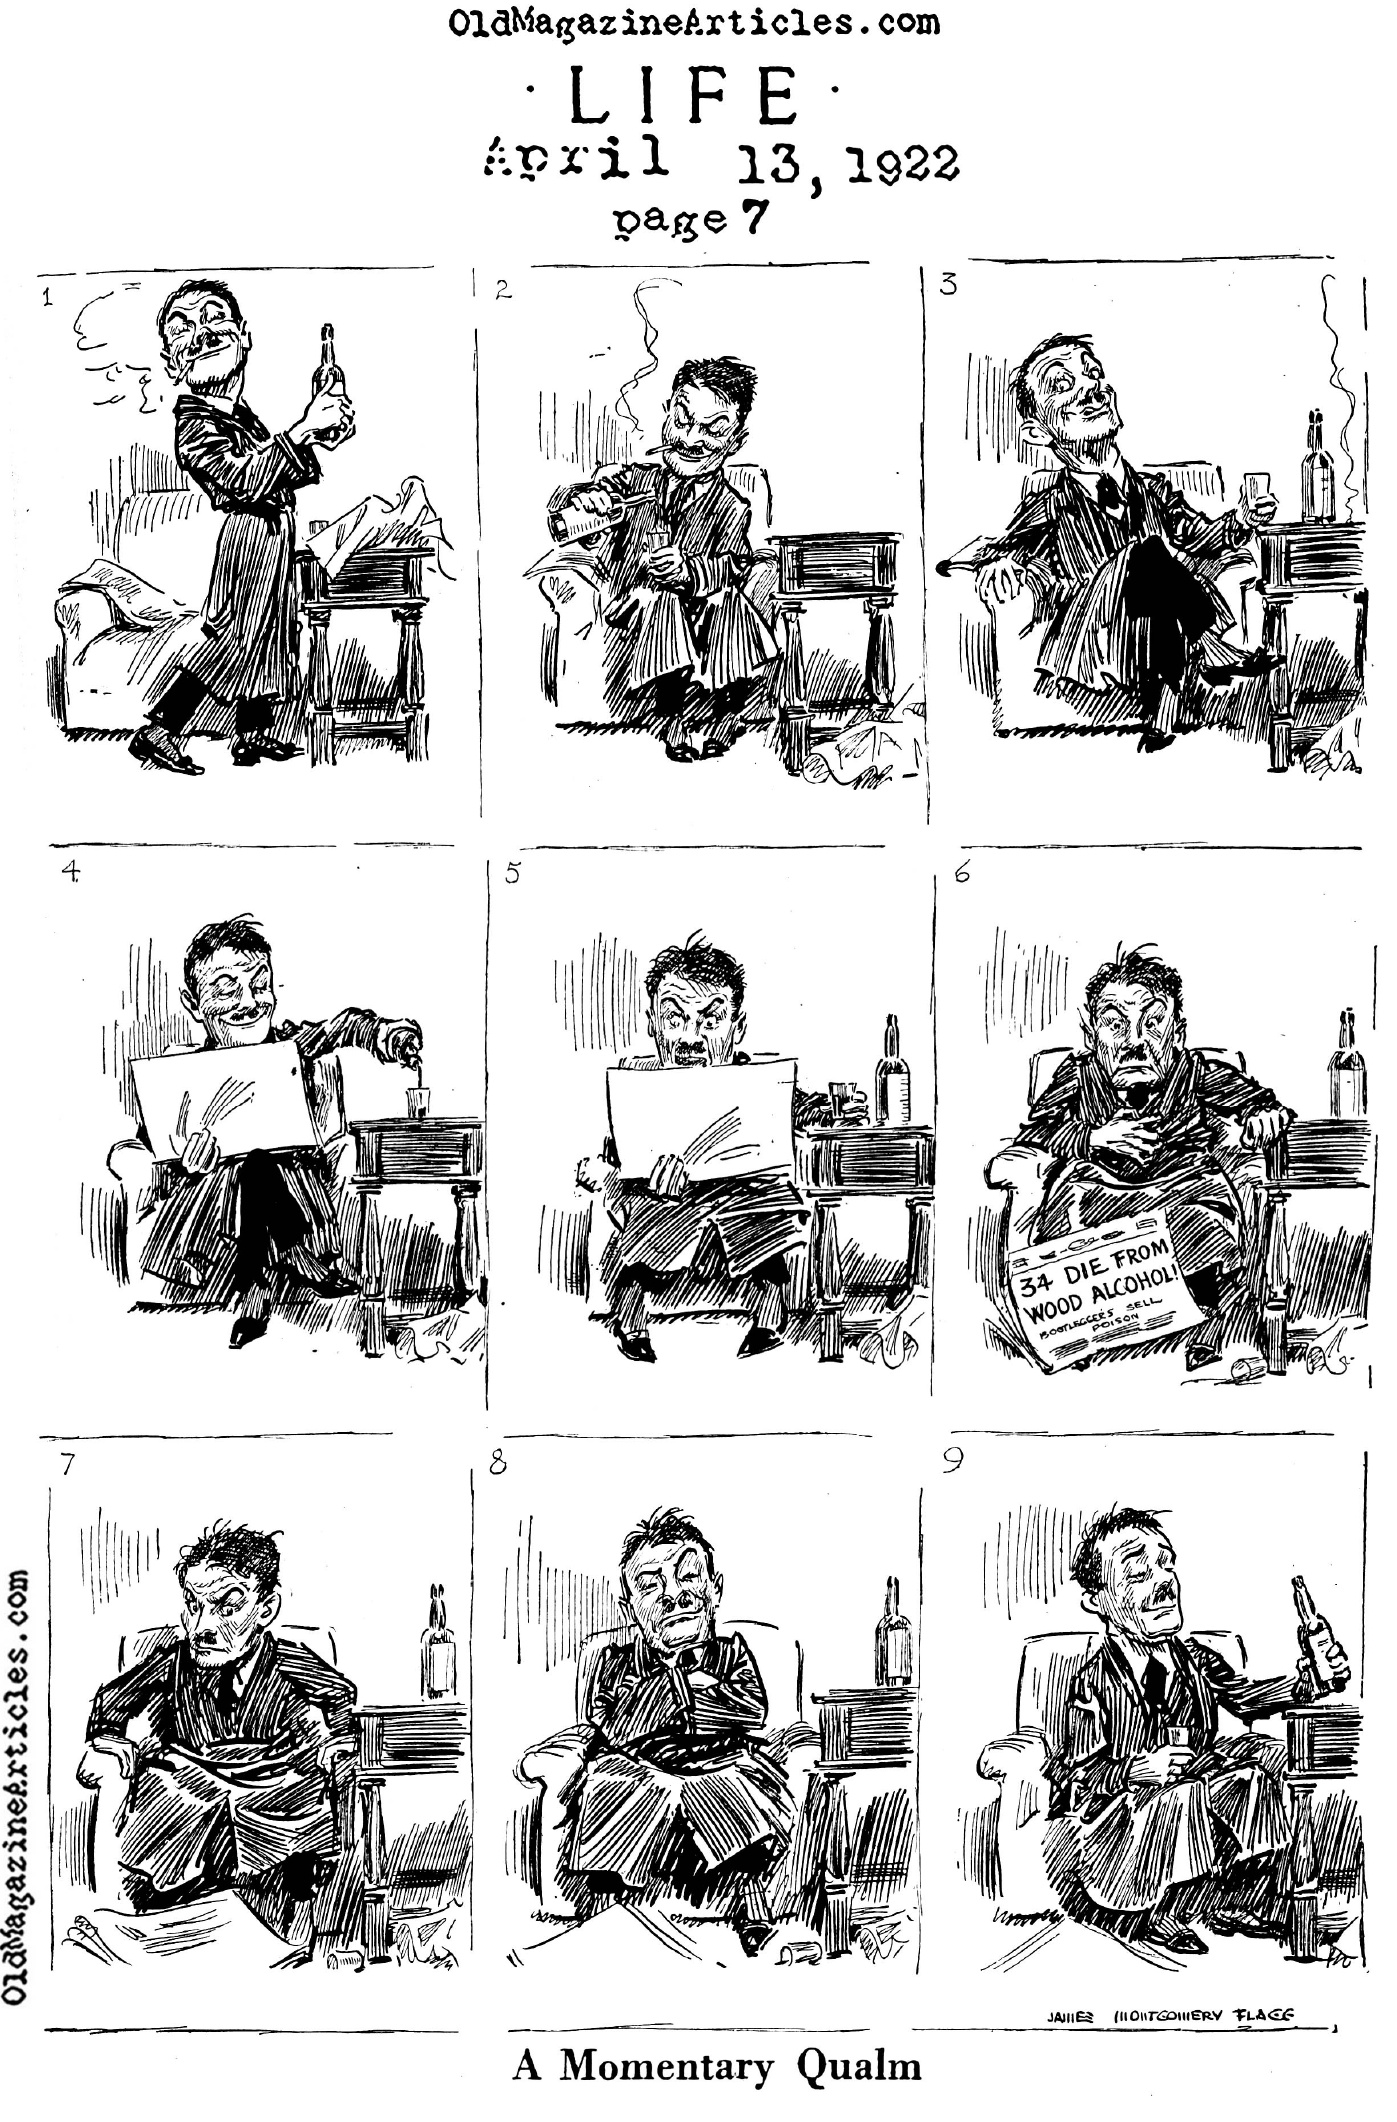 james montgomery flagg cartoon what was dangerous about a prohibition cartoon by james montgommery flagg life magazine 1922